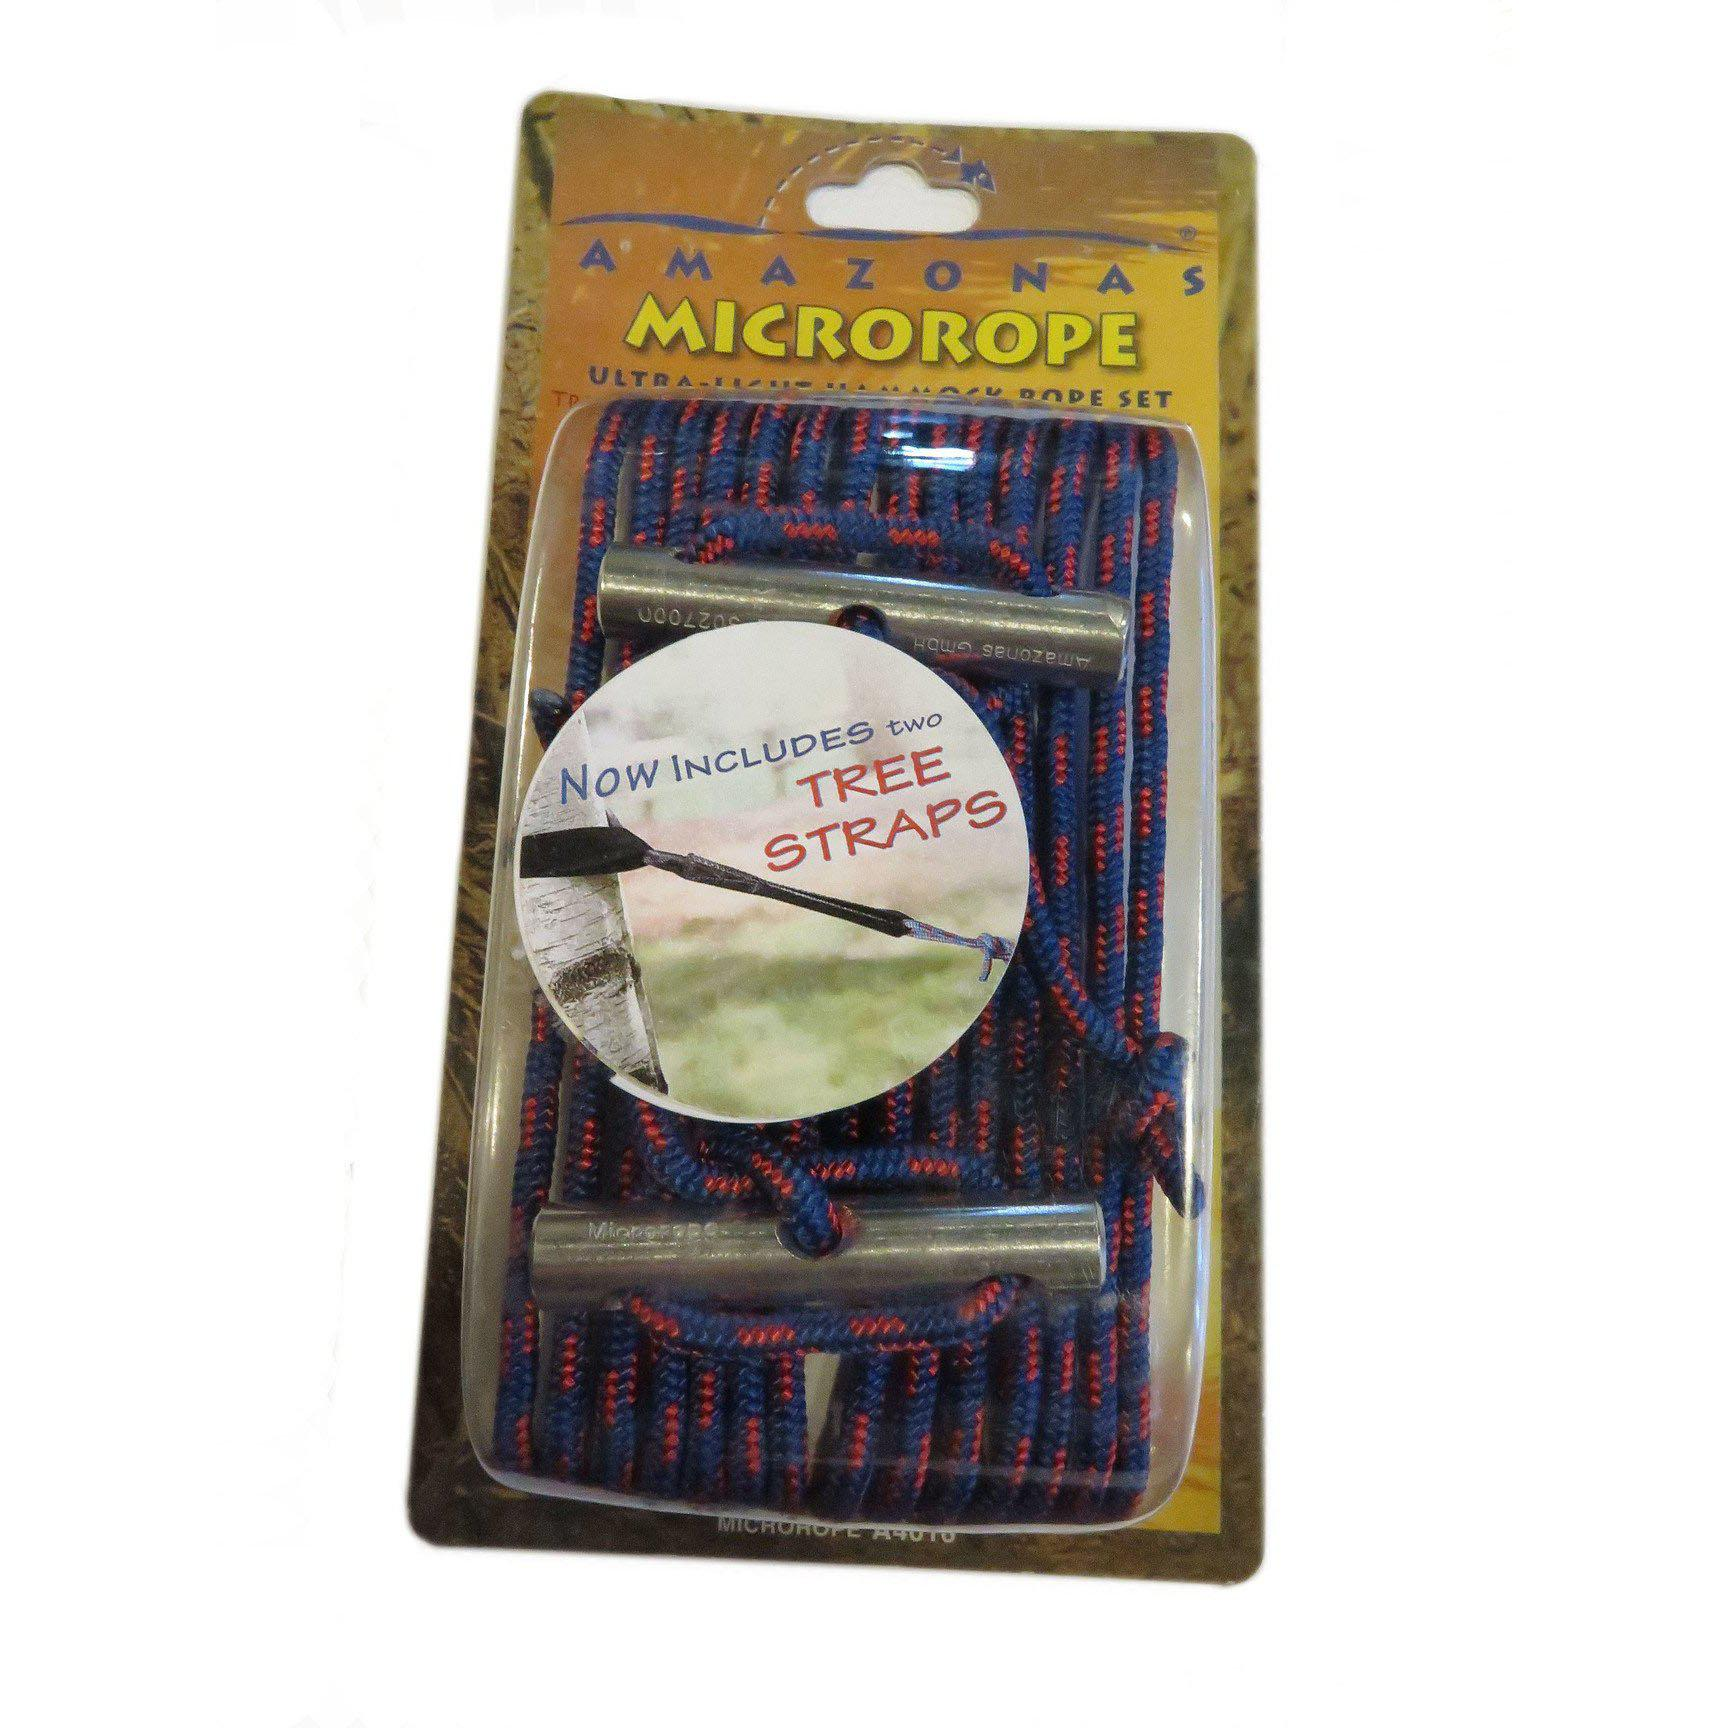 Microrope with straps